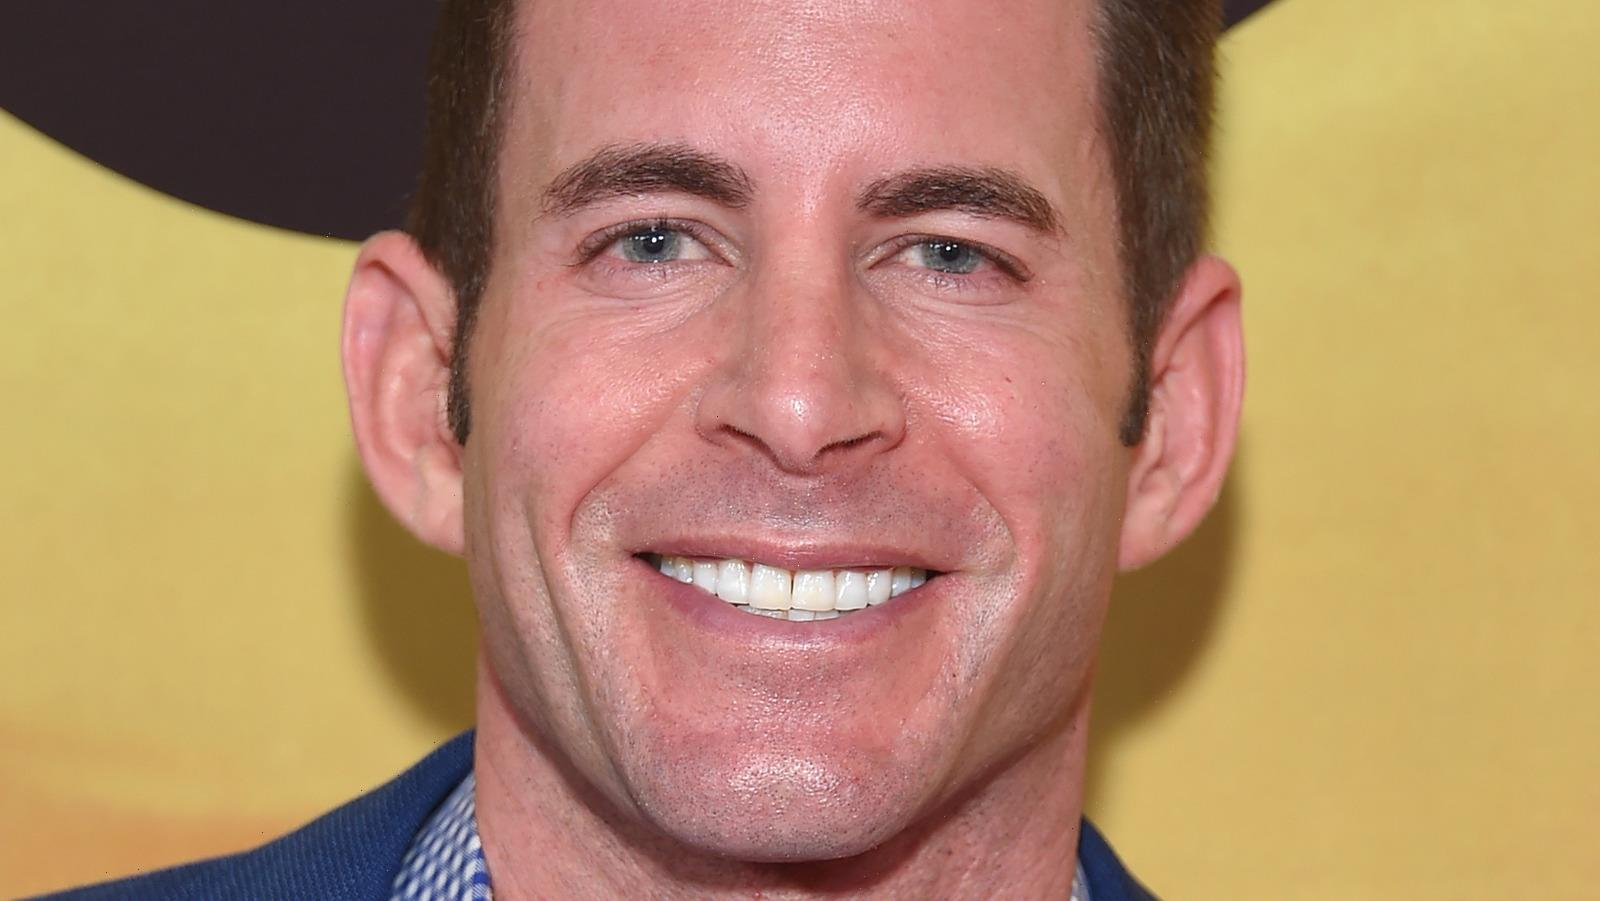 Tarek El Moussa Reveals How Stressful It Is To Work With Christina Haack